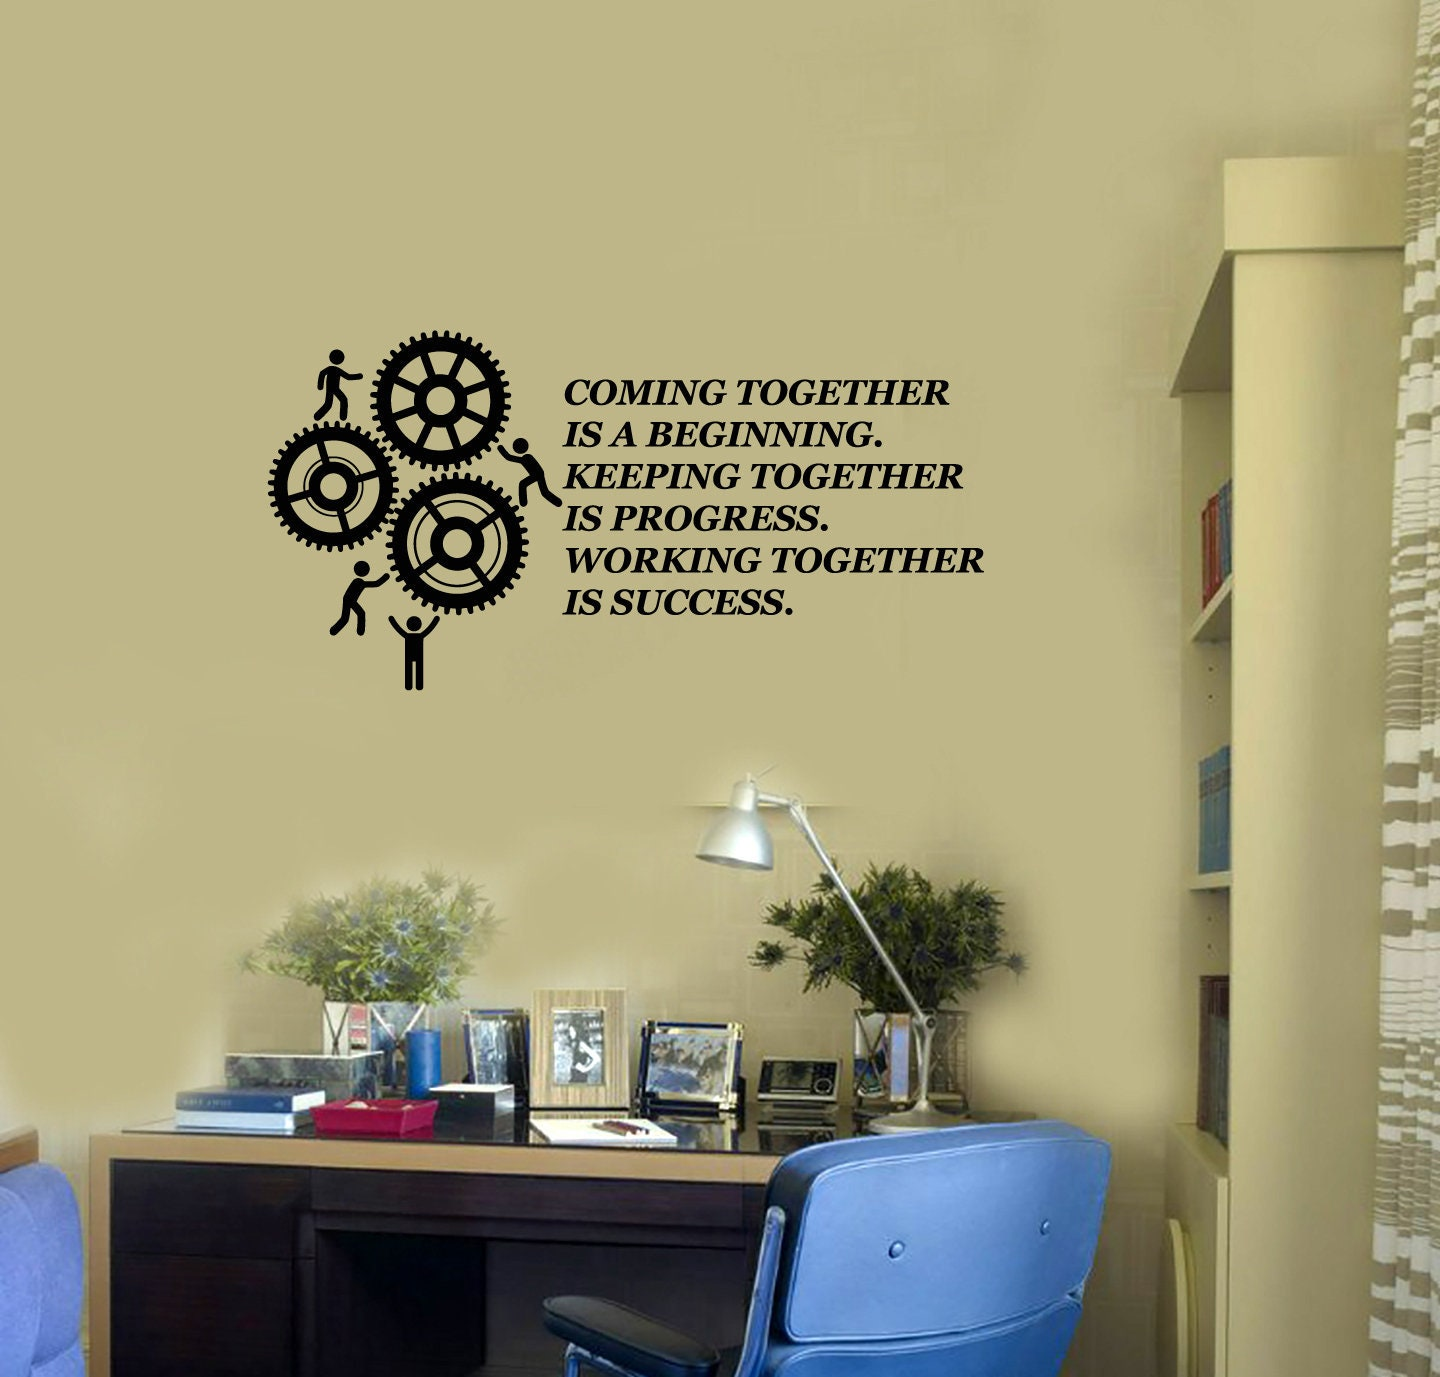 Teamwork Vinyl Wall Decal Quote Gears Team Office Space Decor | Etsy